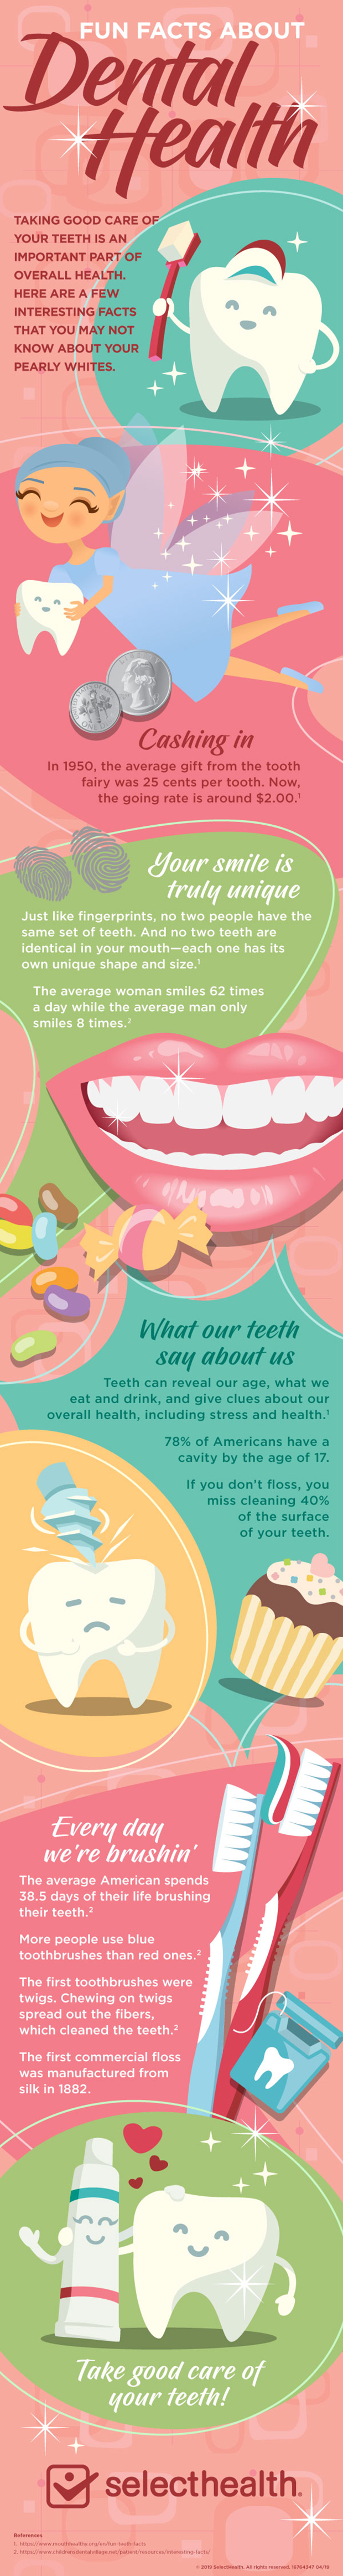 Fun facts about your teeth infographic lg